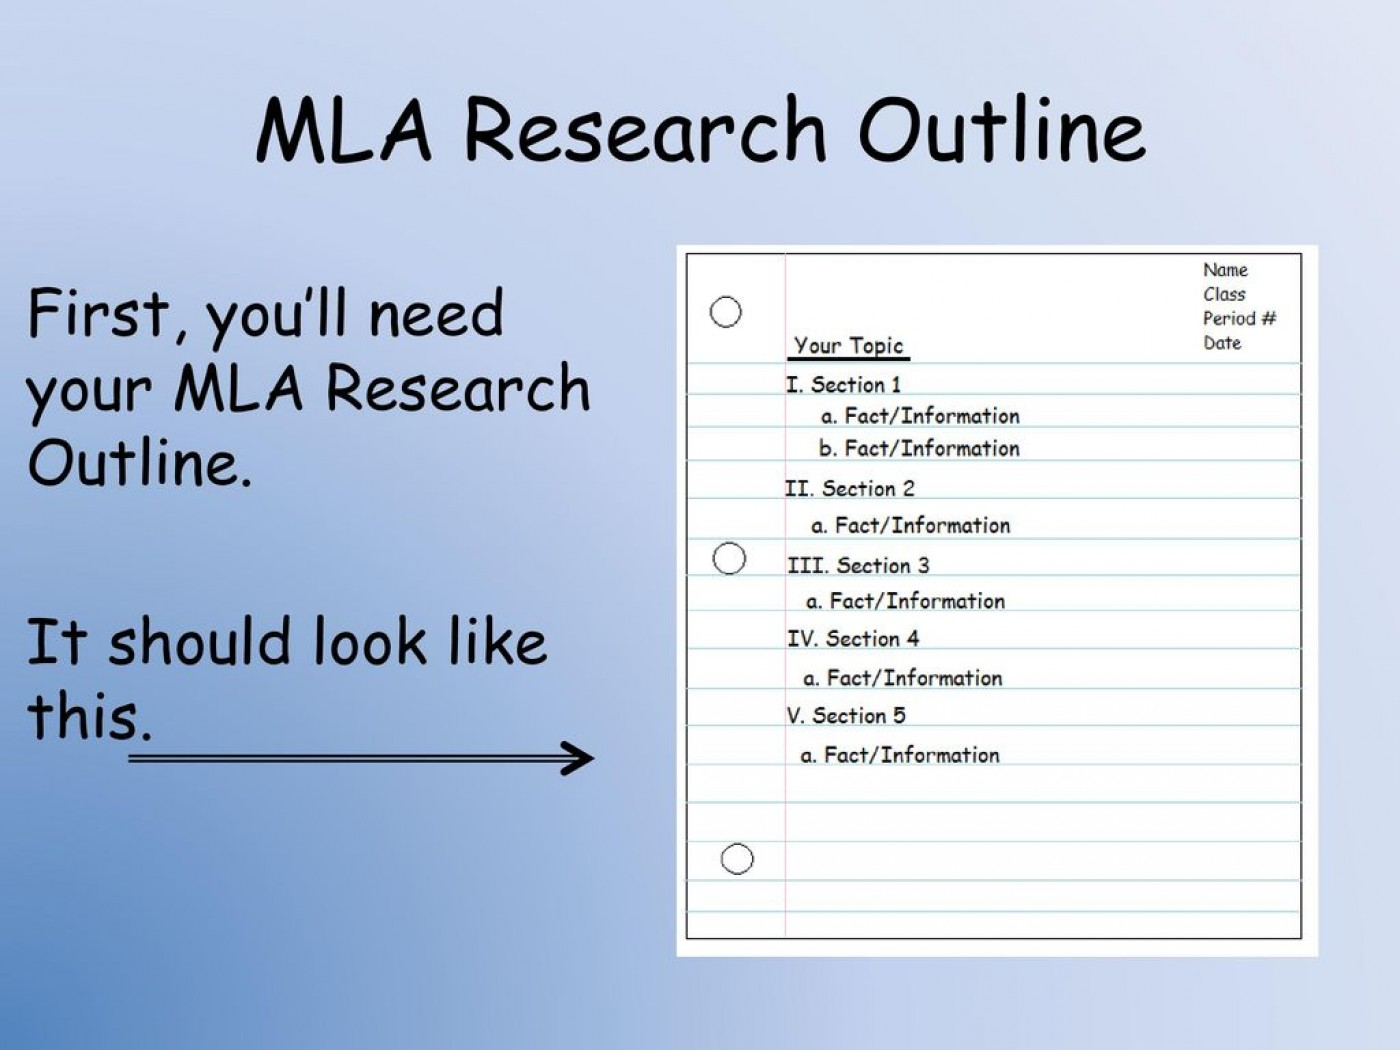 002 Notecards For Research Paper Mla Mlaresearchoutlinefirst2cyoue28099llneedyourmlaresearchoutline Shocking How To Write Sample 1400